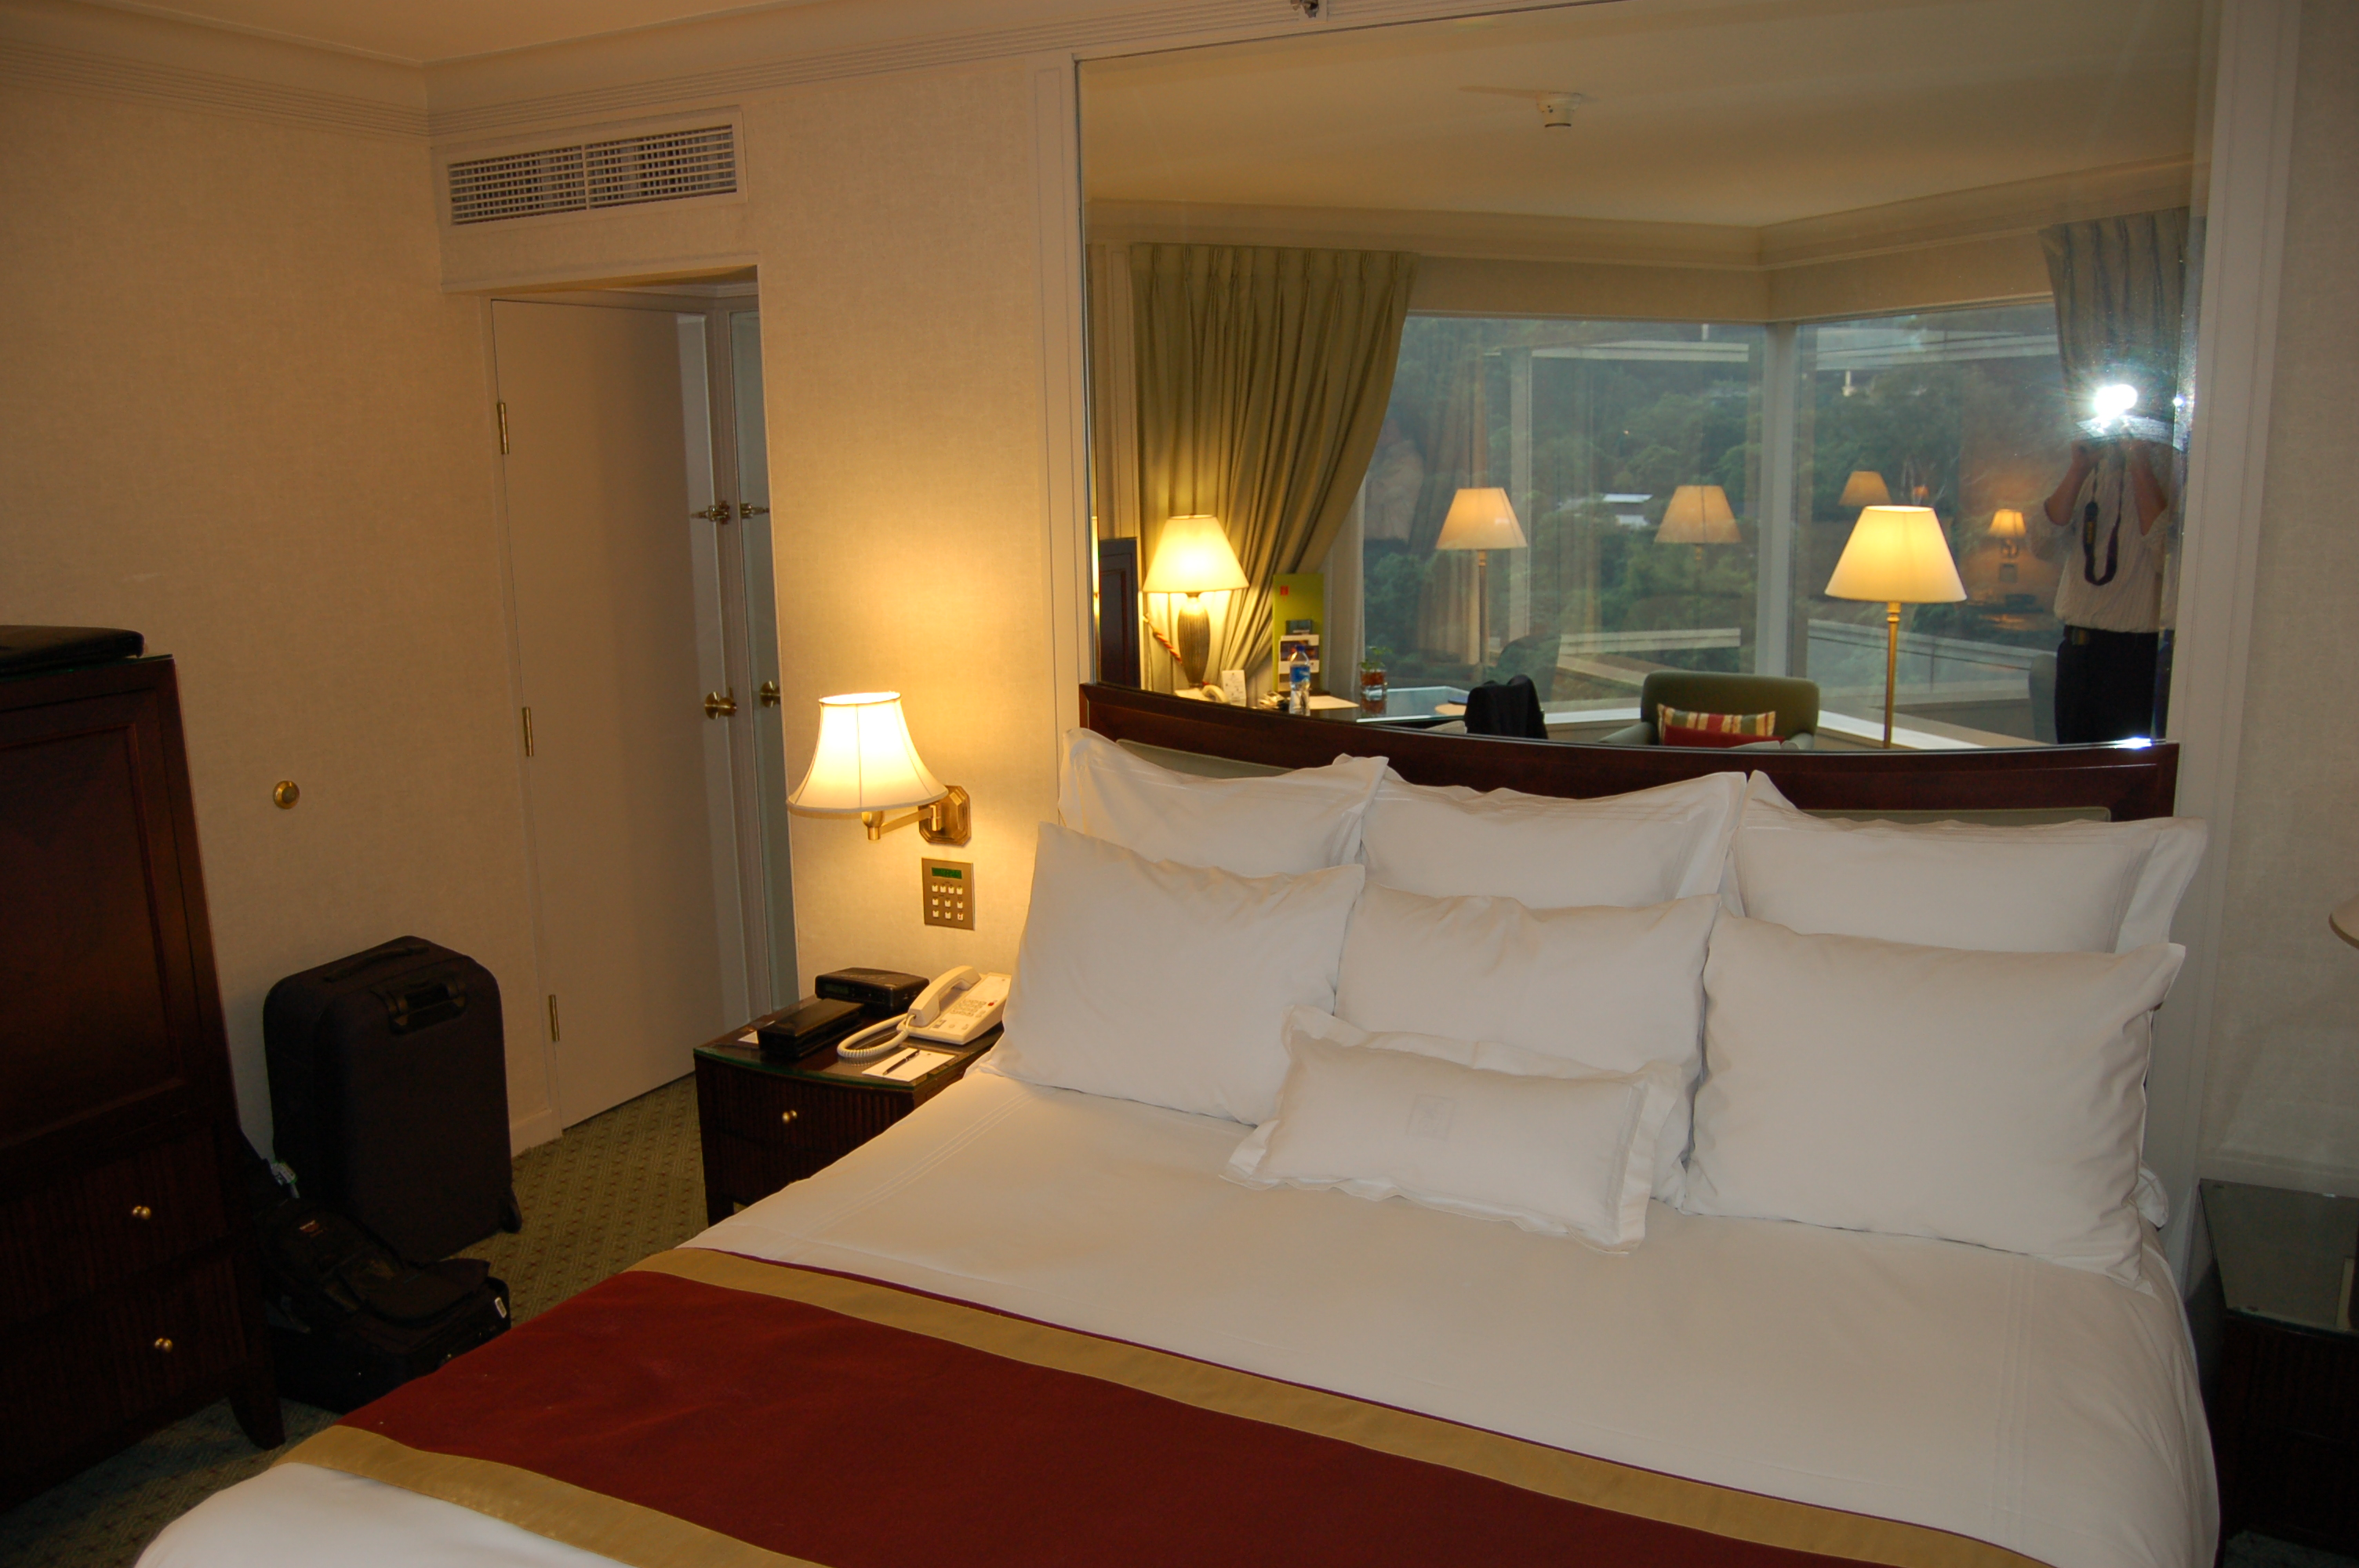 hotel tang premier hotels clsc hor marriott travel road orchard mattress deluxe sindt singapore room plaza